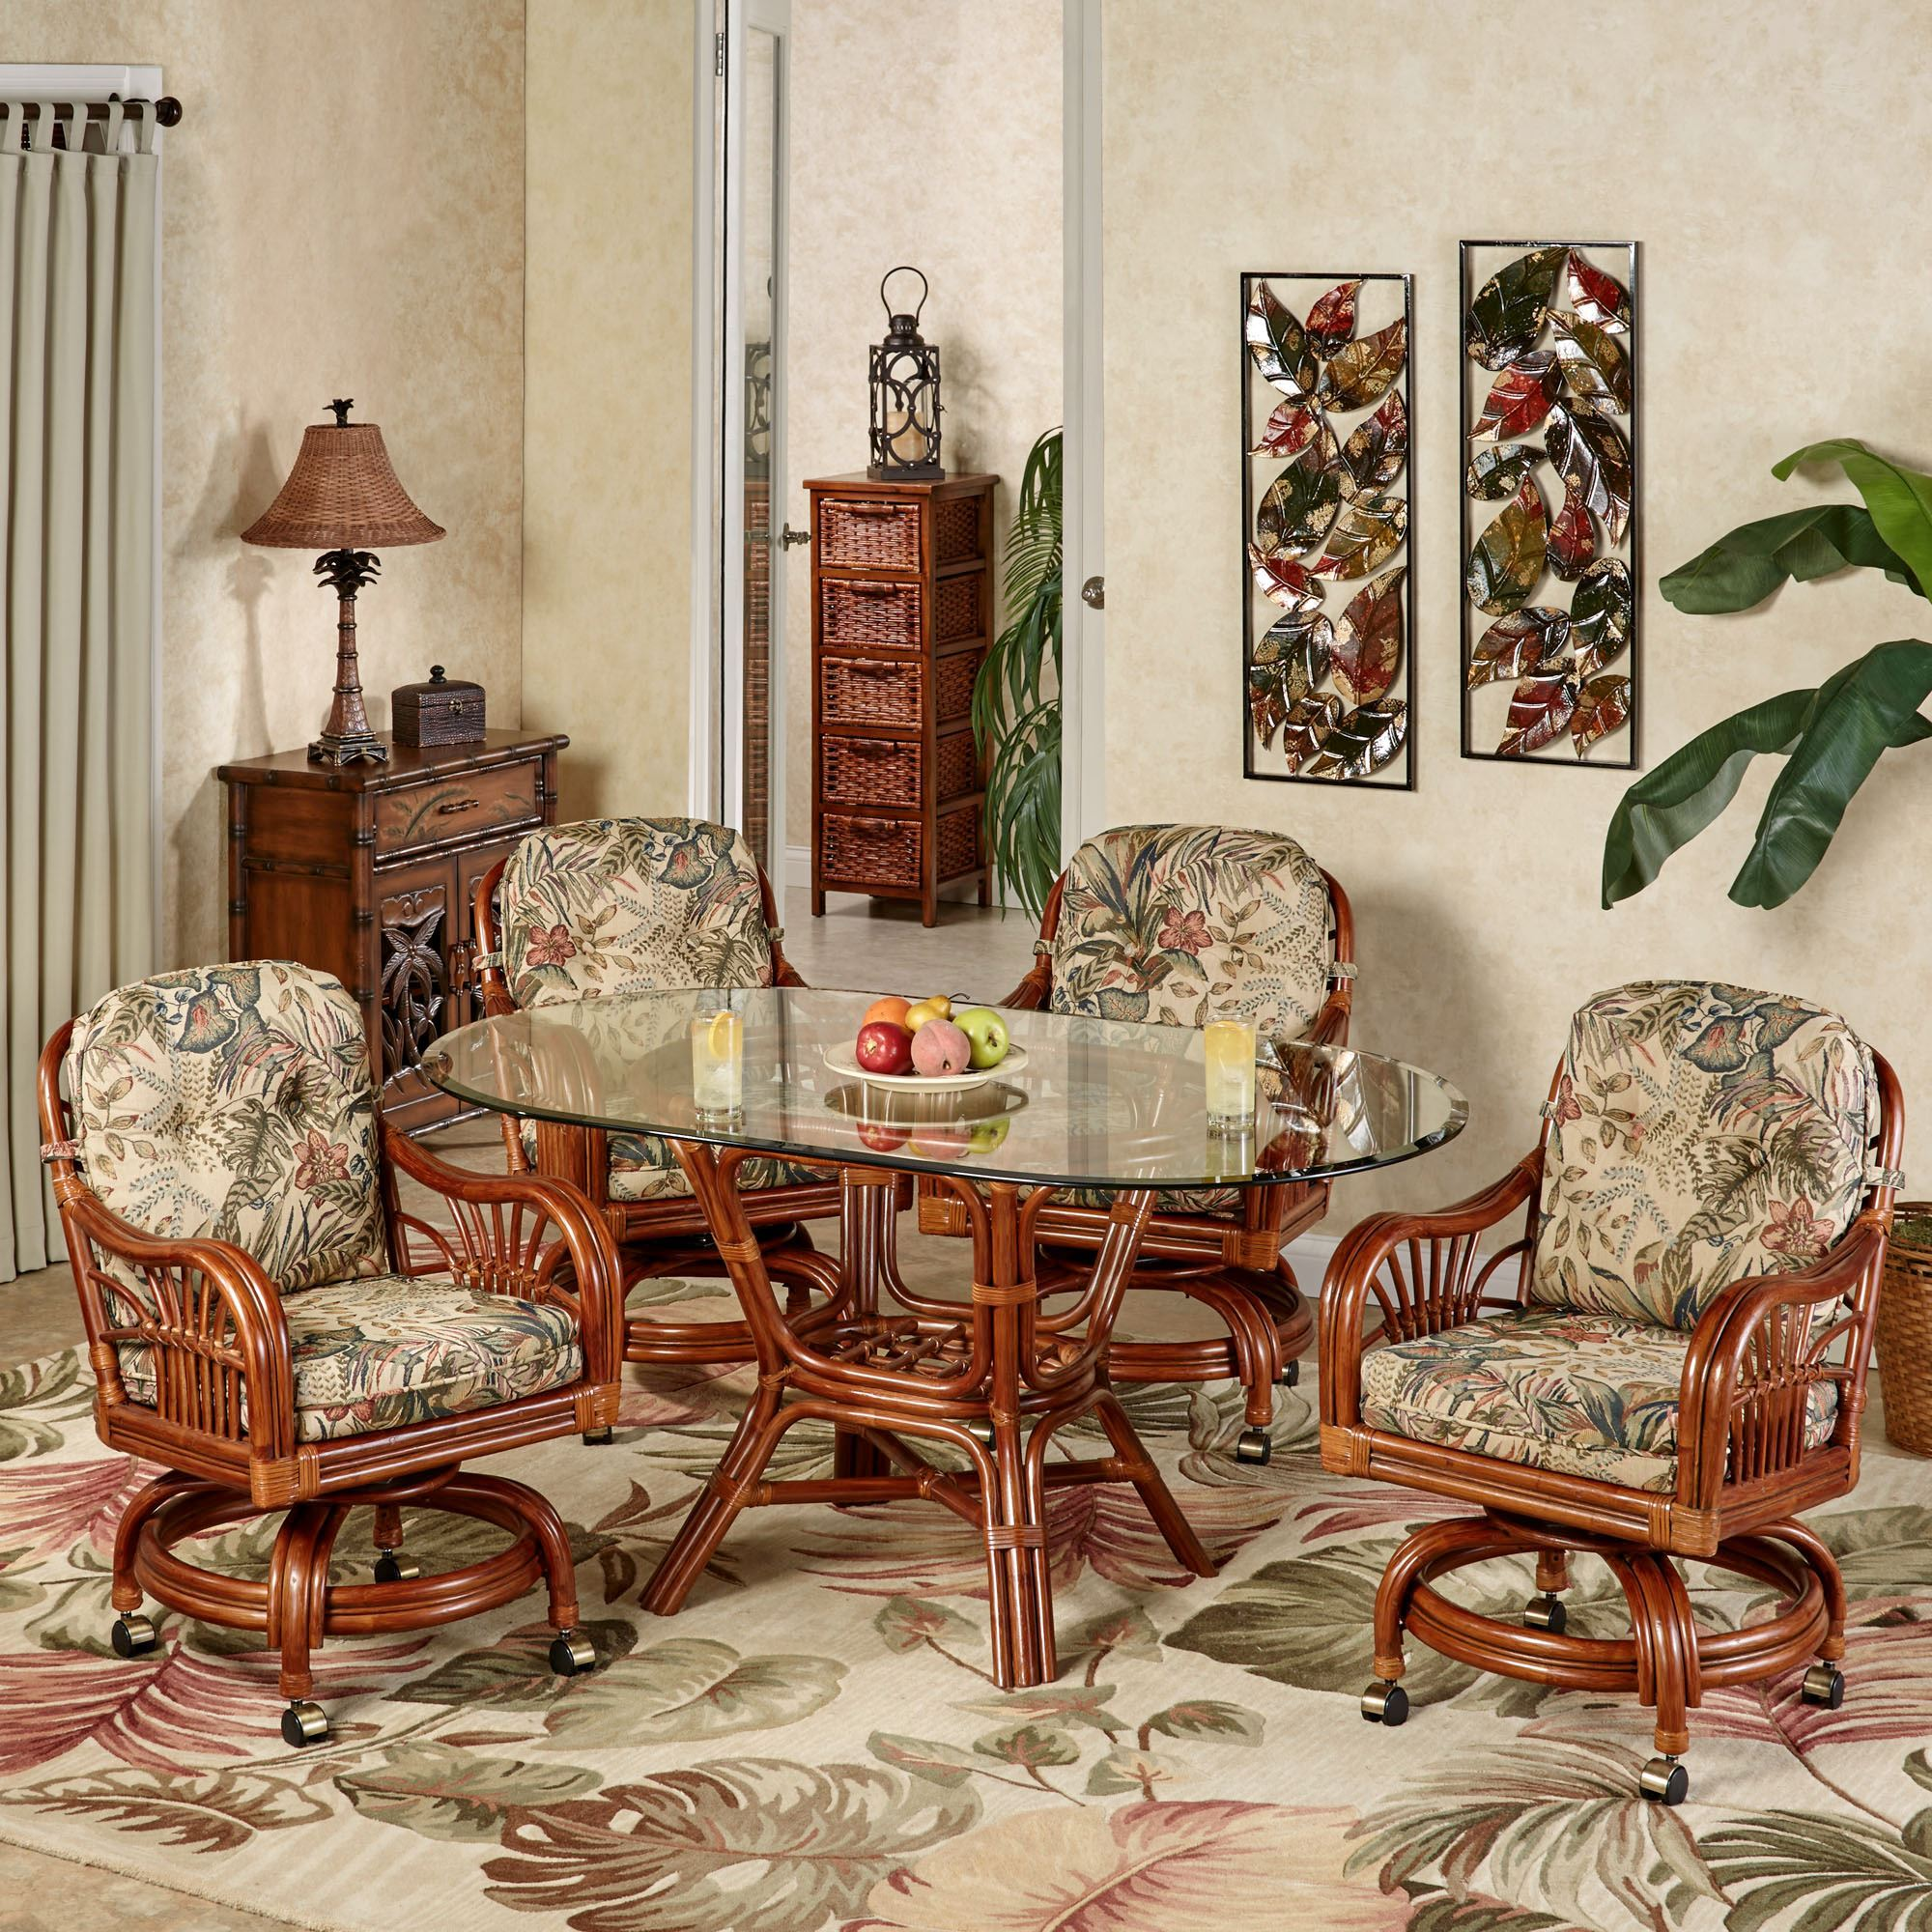 Leikela Oval Dining Table with Caster Chairs Rain Forest Oval Set of Five & Leikela Rain Forest Tropical Dining Furniture Set